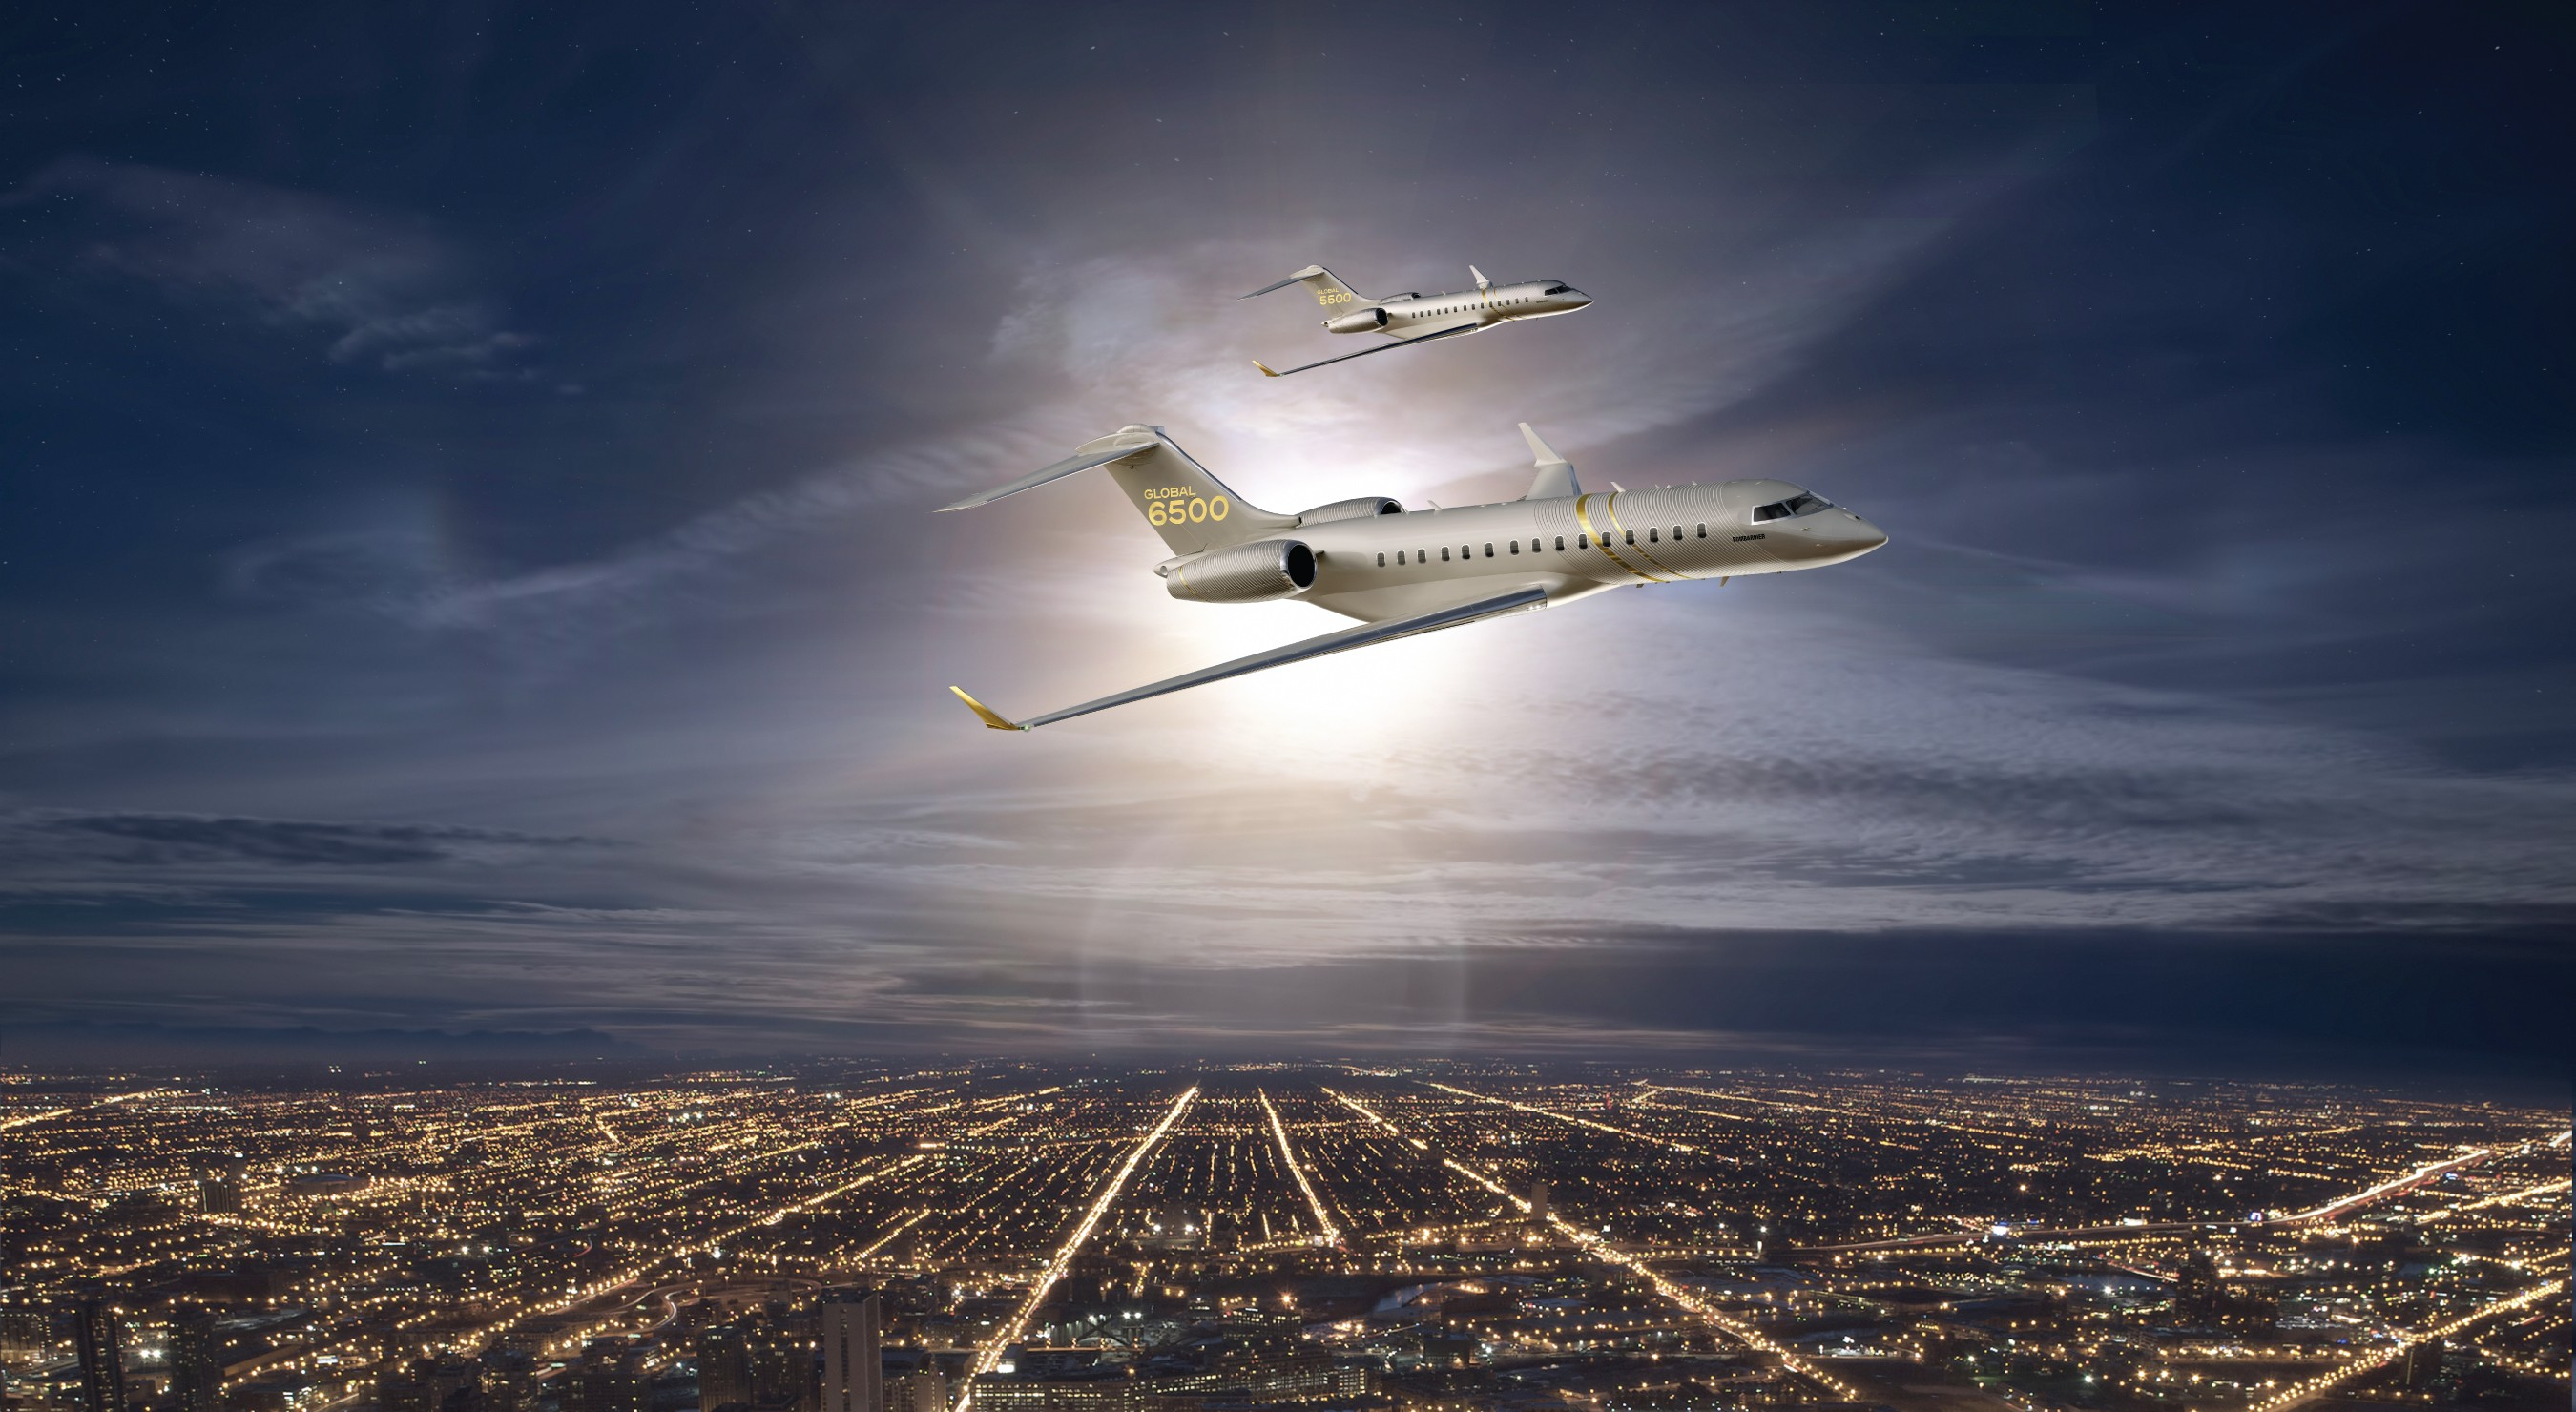 Introducing the Global 5500 | Global 6500 aircraft